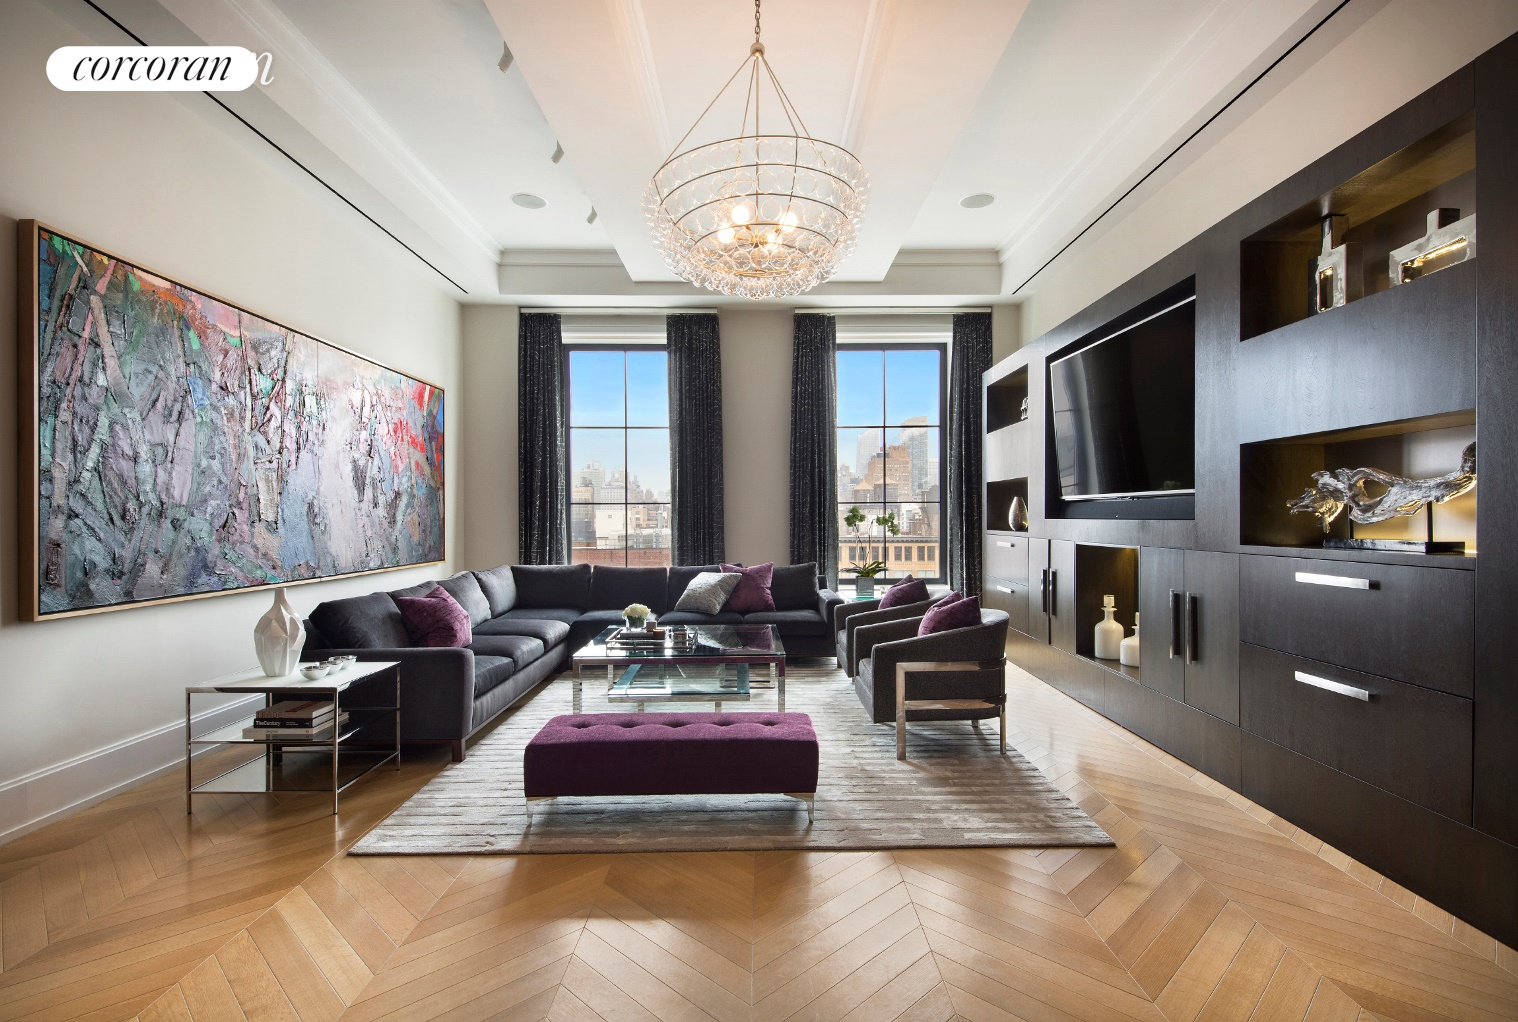 An exquisite and spacious four-bedroom, four-and-a-half-bath residence with two master suites, custom designed with premium upgrades in Chelsea's Walker Tower.Oversized tilt-and-turn windows in every room of this almost 3,900 SF corner home with views facing South, West and North. French herringbone oak flooring and up to 12 ft ceilings set an elegant tone throughout. Enjoy loft-like proportions in the massive great room lined with a wall of custom built-ins, while the Smallbone kitchen features marble and limestone countertops, Dornbracht fixtures, Sub-Zero refrigerator, fully vented induction cooktop with pot filler, two Viking wall ovens and a warming drawer, Miele speed oven and built-in coffee system, and a wine refrigerator.The sprawling master suite is a serene escape with grand dimensions. The en suite bathroom in floor-to-ceiling marble, features an inviting cast-iron soaking tub, frameless glass steam shower, extra-wide dual-sink vanity and Waterworks fixtures. A glamorous dressing room is flanked by two walk-in closets, with three additional closets providing even more storage. Three more complete bedroom suites line the western wing of the home, each with elegant wall-coverings, chic custom lighting, walk-in closets and gorgeous en suite bathrooms. No detail was overlooked in the design of this home. Radiant heat floors pave the entire residence; a Crestron Home Automation System attends to all controls; the large laundry closet features a fully vented dryer; and built-in zoned humidification system, ultra-quiet central air conditioning and ventilation ensures optimal temperature and air quality year-round.Designed by Ralph Thomas Walker, the building was originally built in 1929 and then converted to luxury condominium homes in 2012. Residents of Walker Tower enjoy 24-hour doorman and concierge service, a library lounge, state-of-the-art fitness center, playroom and a landscaped roof deck with dining area, sun lawn, observation area and covered cabana. 